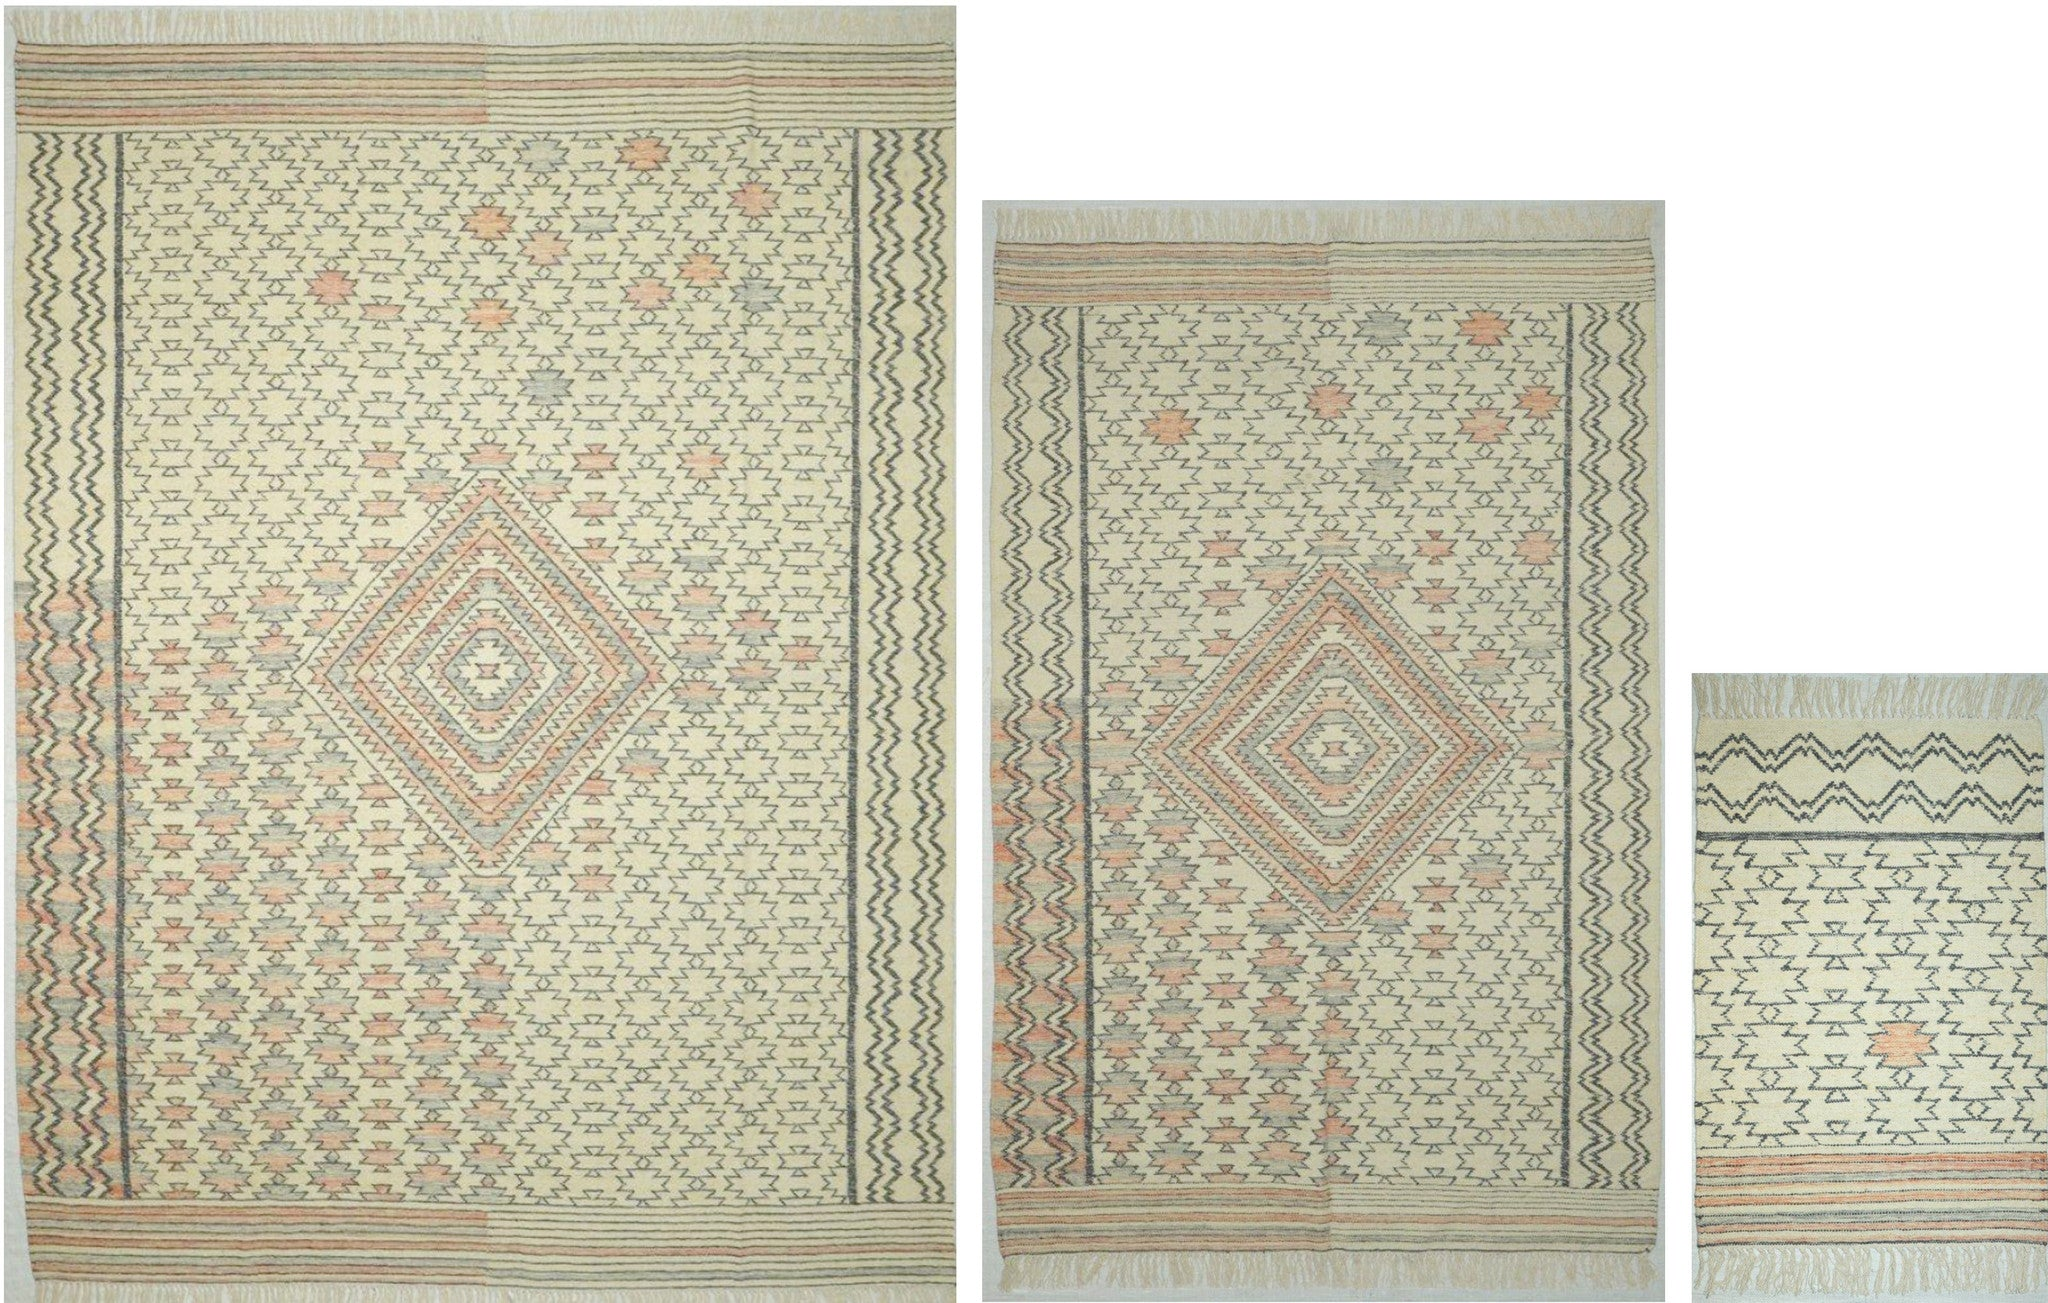 CAIRO (fair-trade) rugs